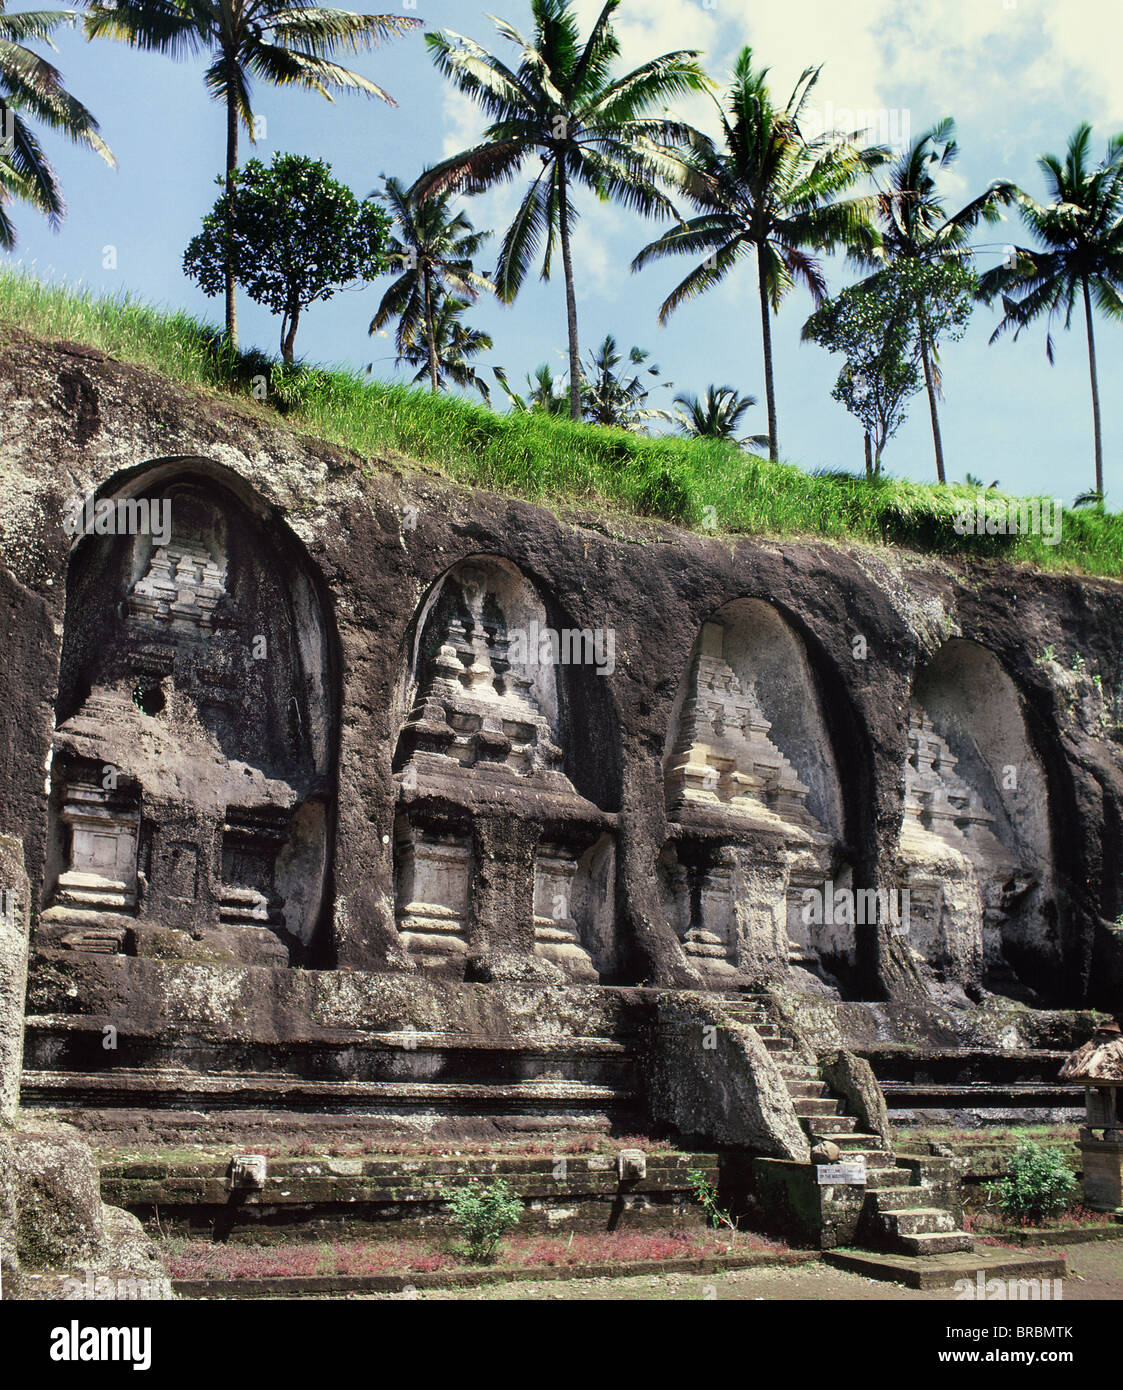 Funeral temples cut into rock at Gunung Kawi, a complex of royal monuments from 11th century, Bali, Indonesia - Stock Image